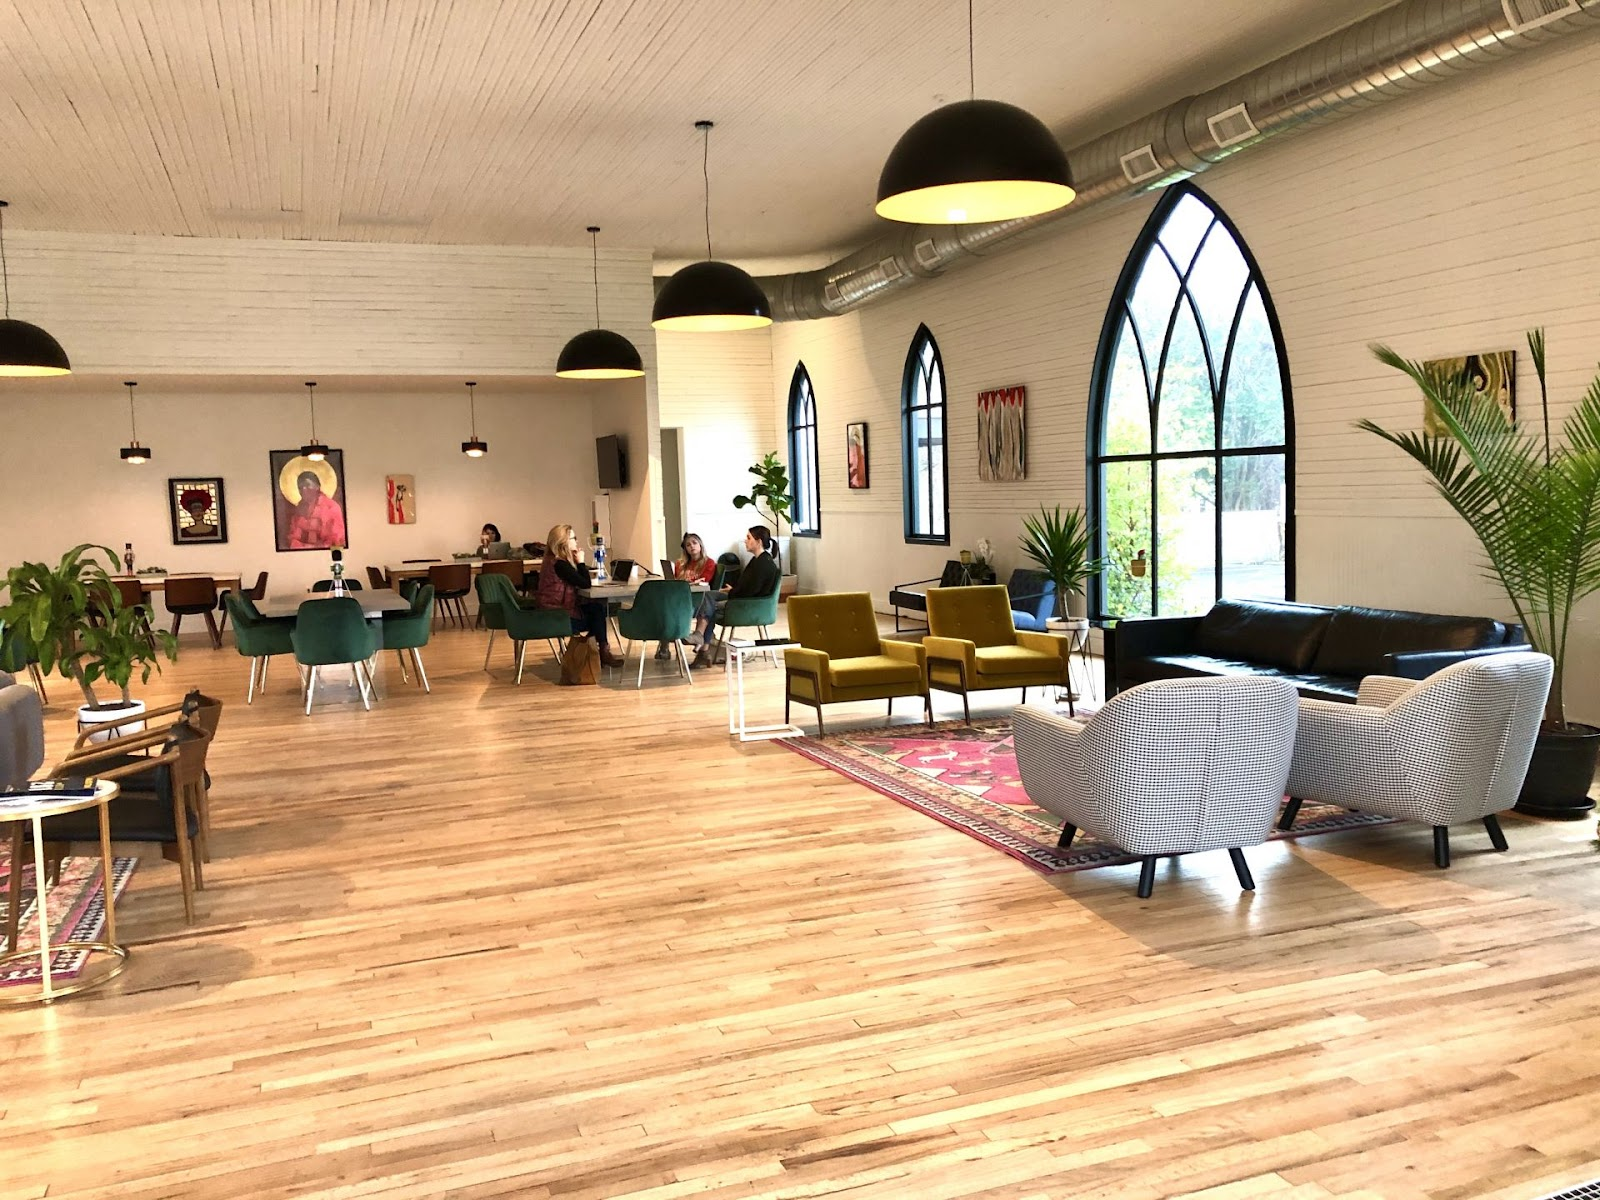 Coworking Space Austin: 15 Best Spaces with Pricing, Amenities & Location [2021] 41